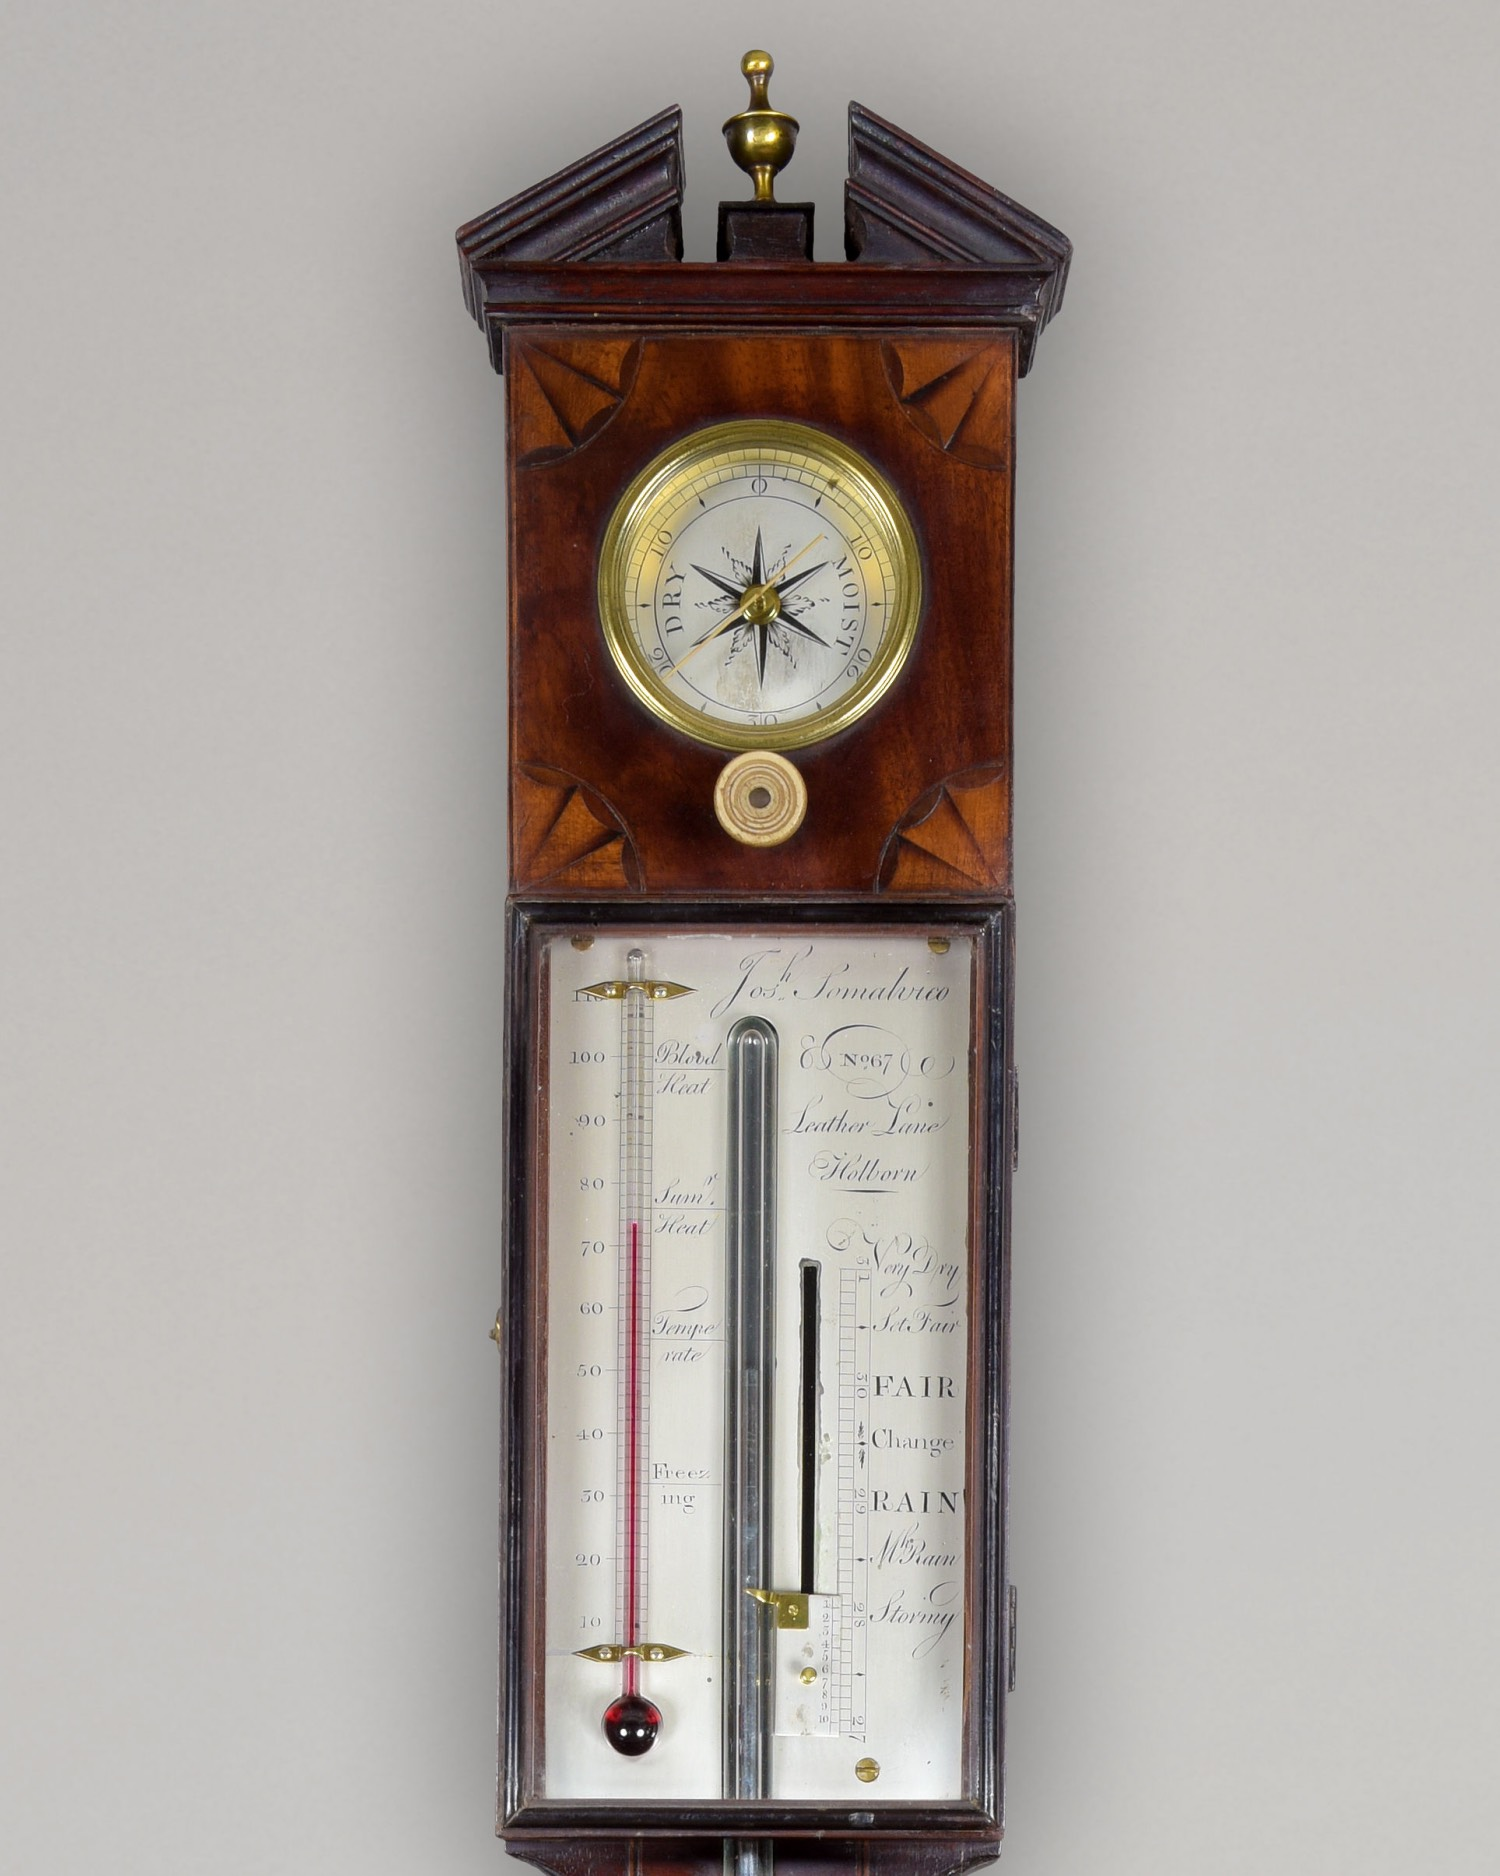 JOSEPH SOMALVICO N° 67 LEATHER LANE, HOLBORN. A FINE LATE GEORGE III PERIOD ARCHITECTURAL MAHOGANY DOOR STICK BAROMETER.